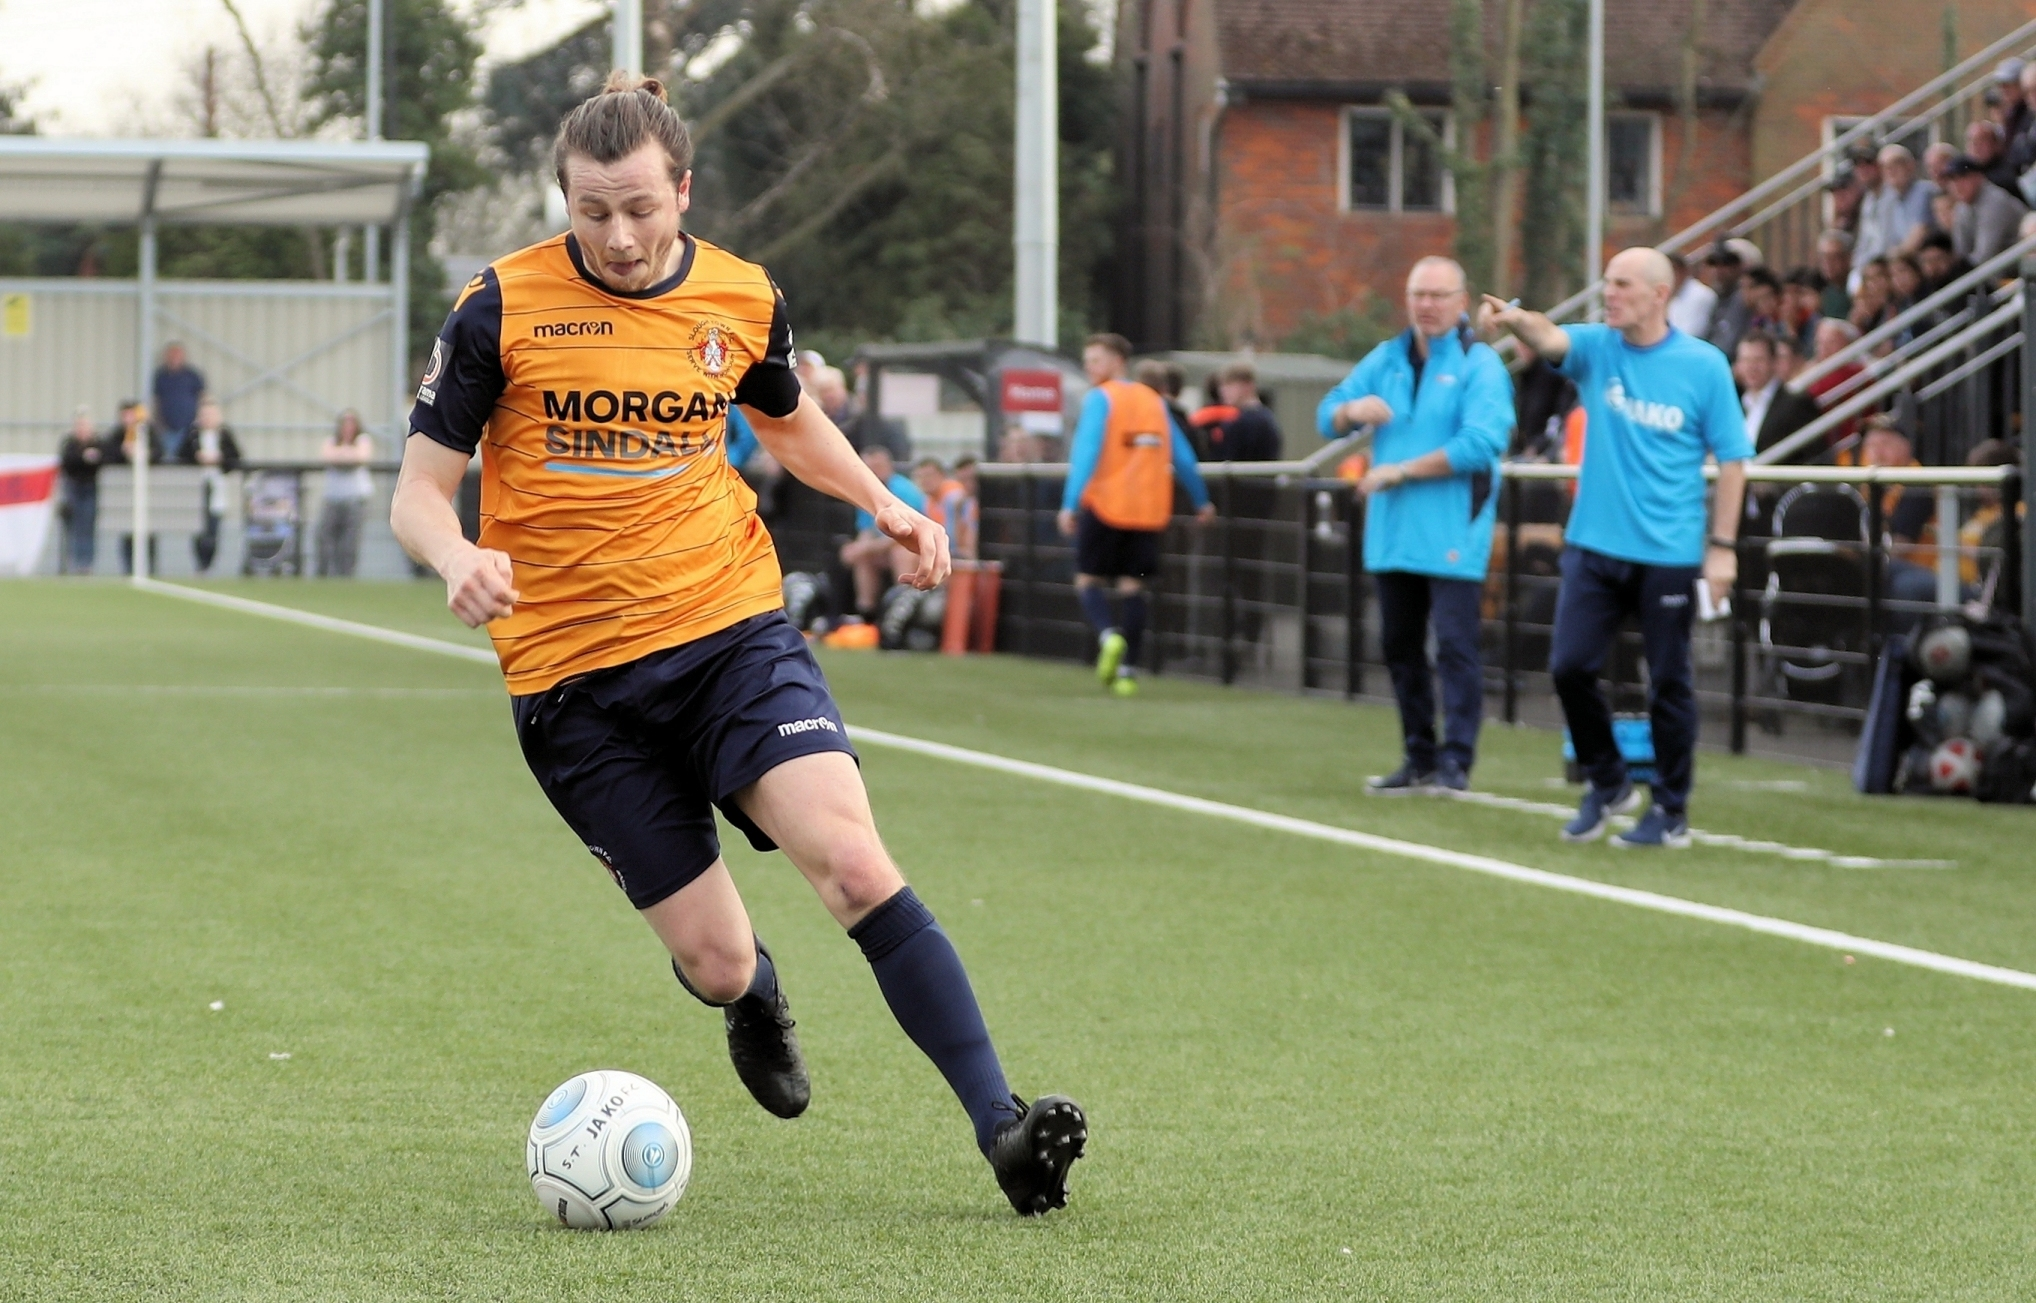 Slough Town earn draw at Maidstone United | Slough Observer